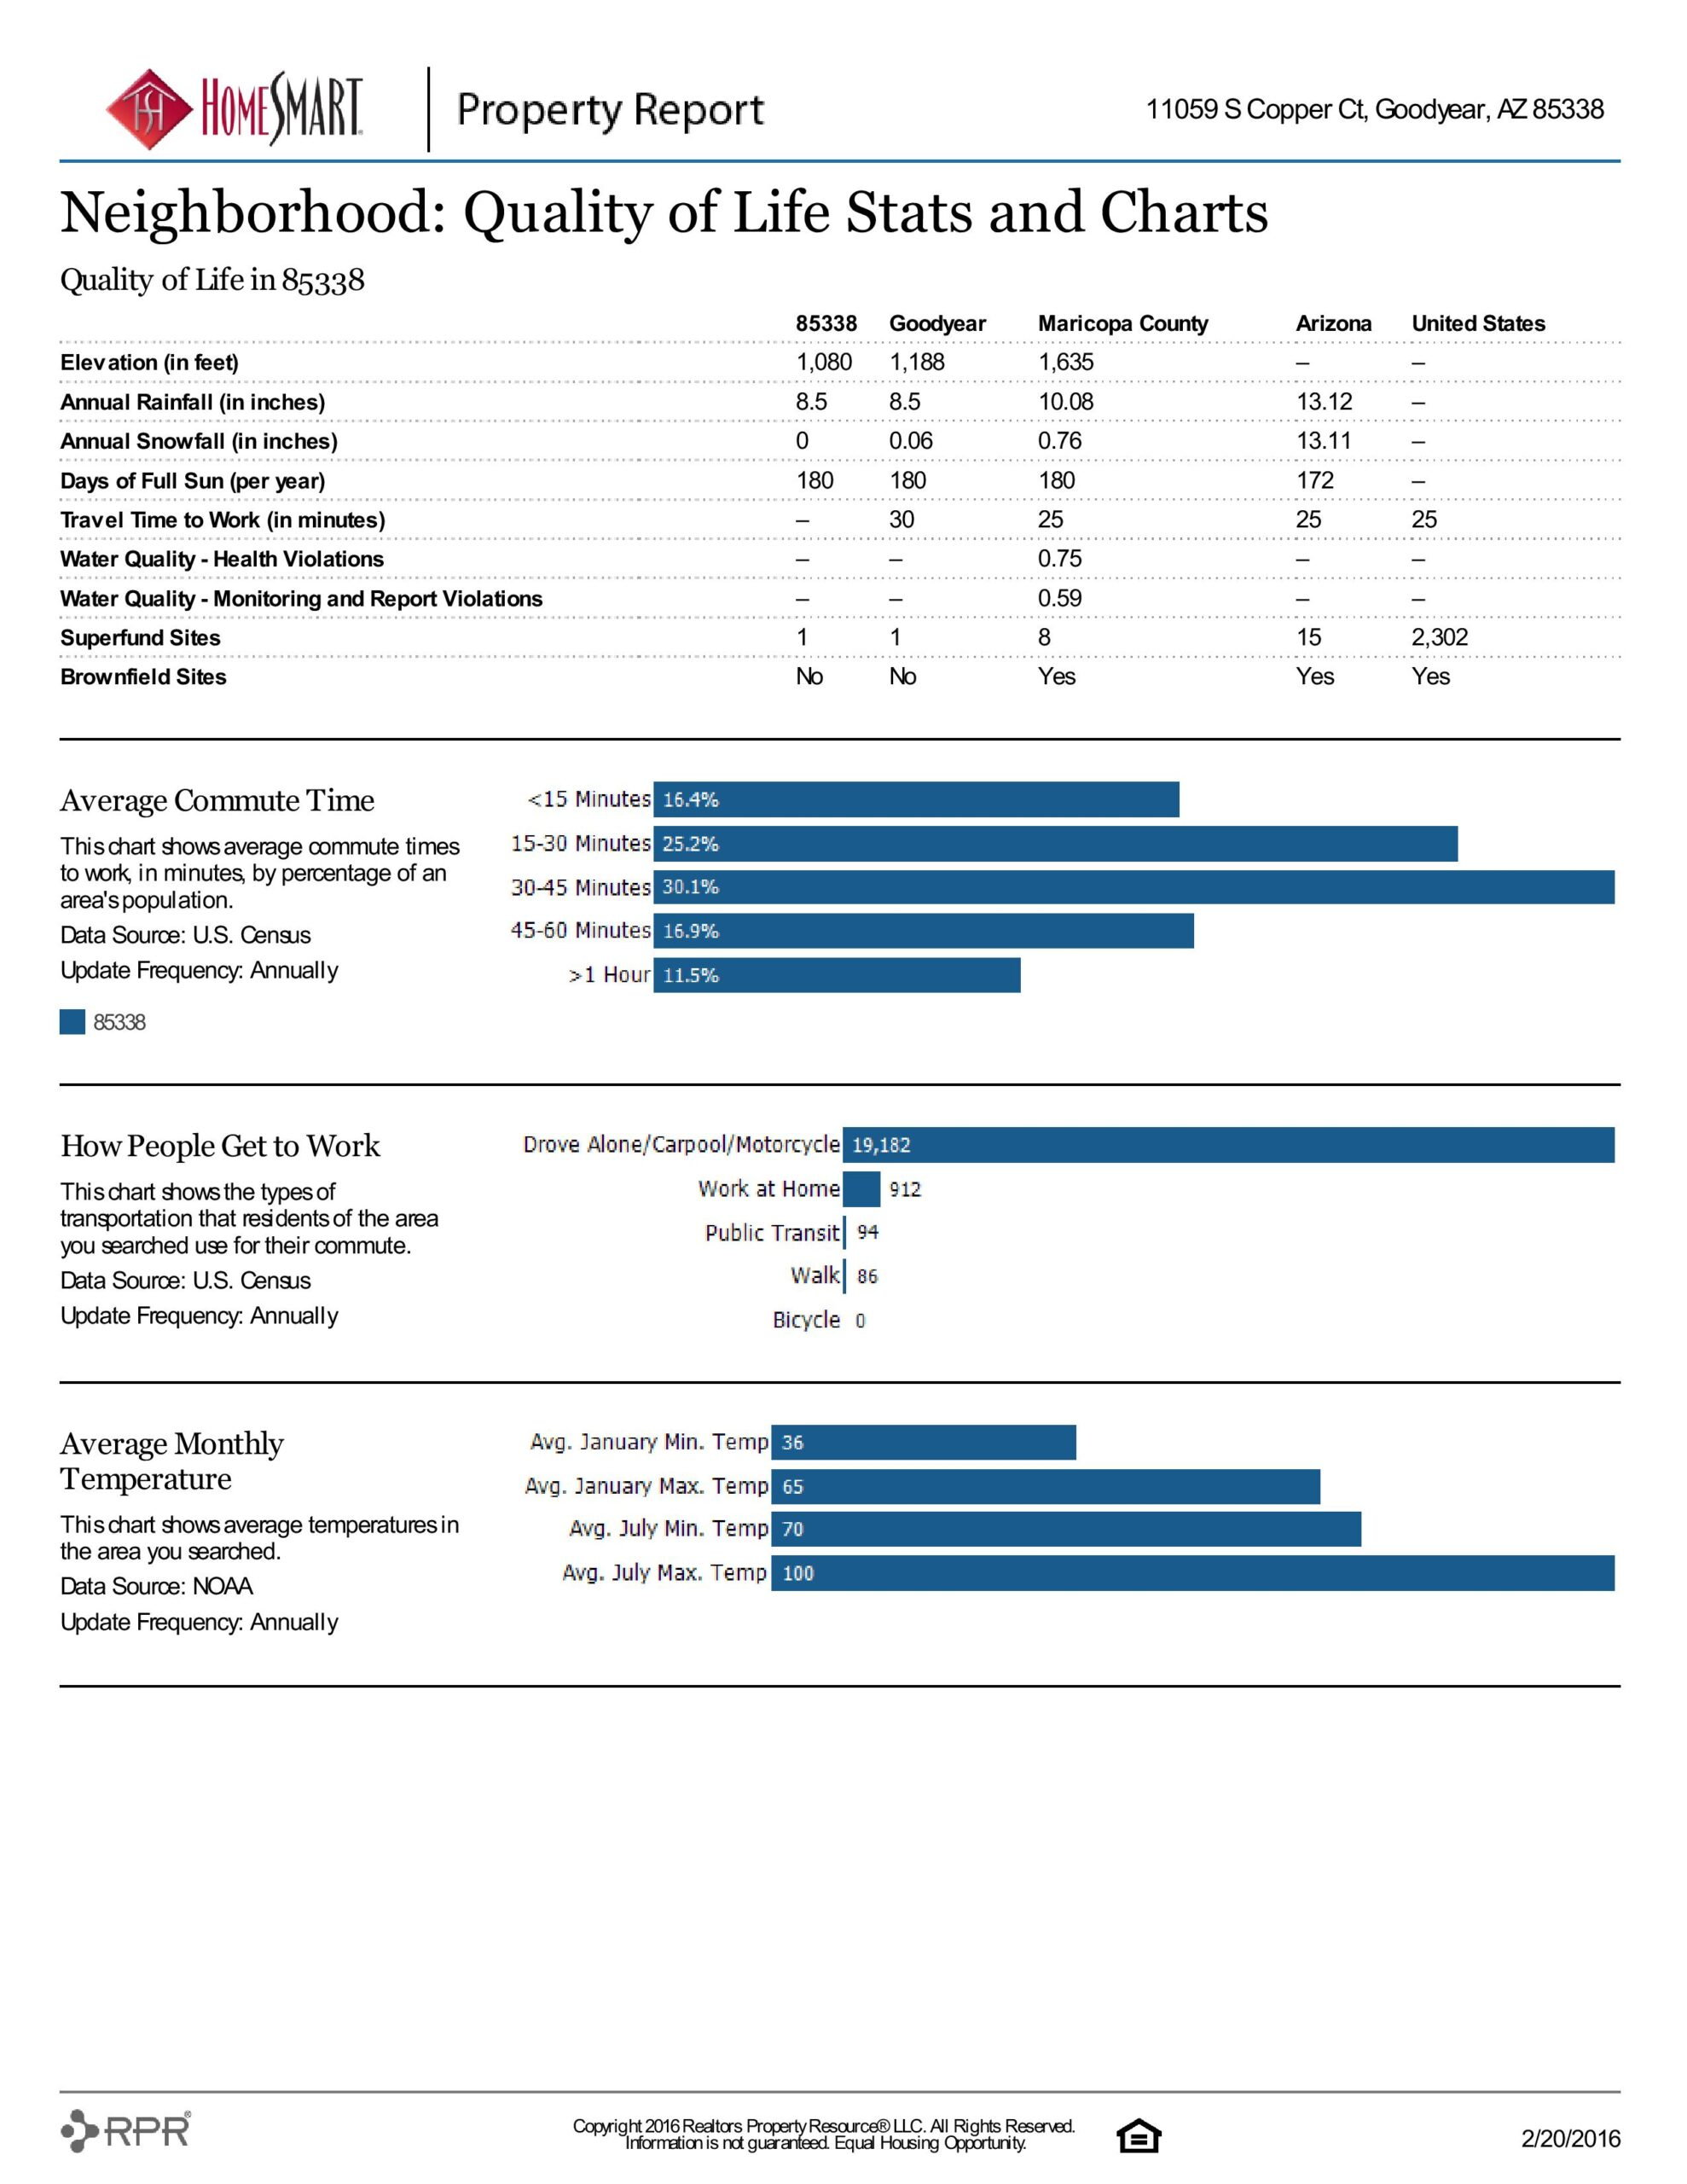 11059 S COPPER CT PROPERTY REPORT-page-024